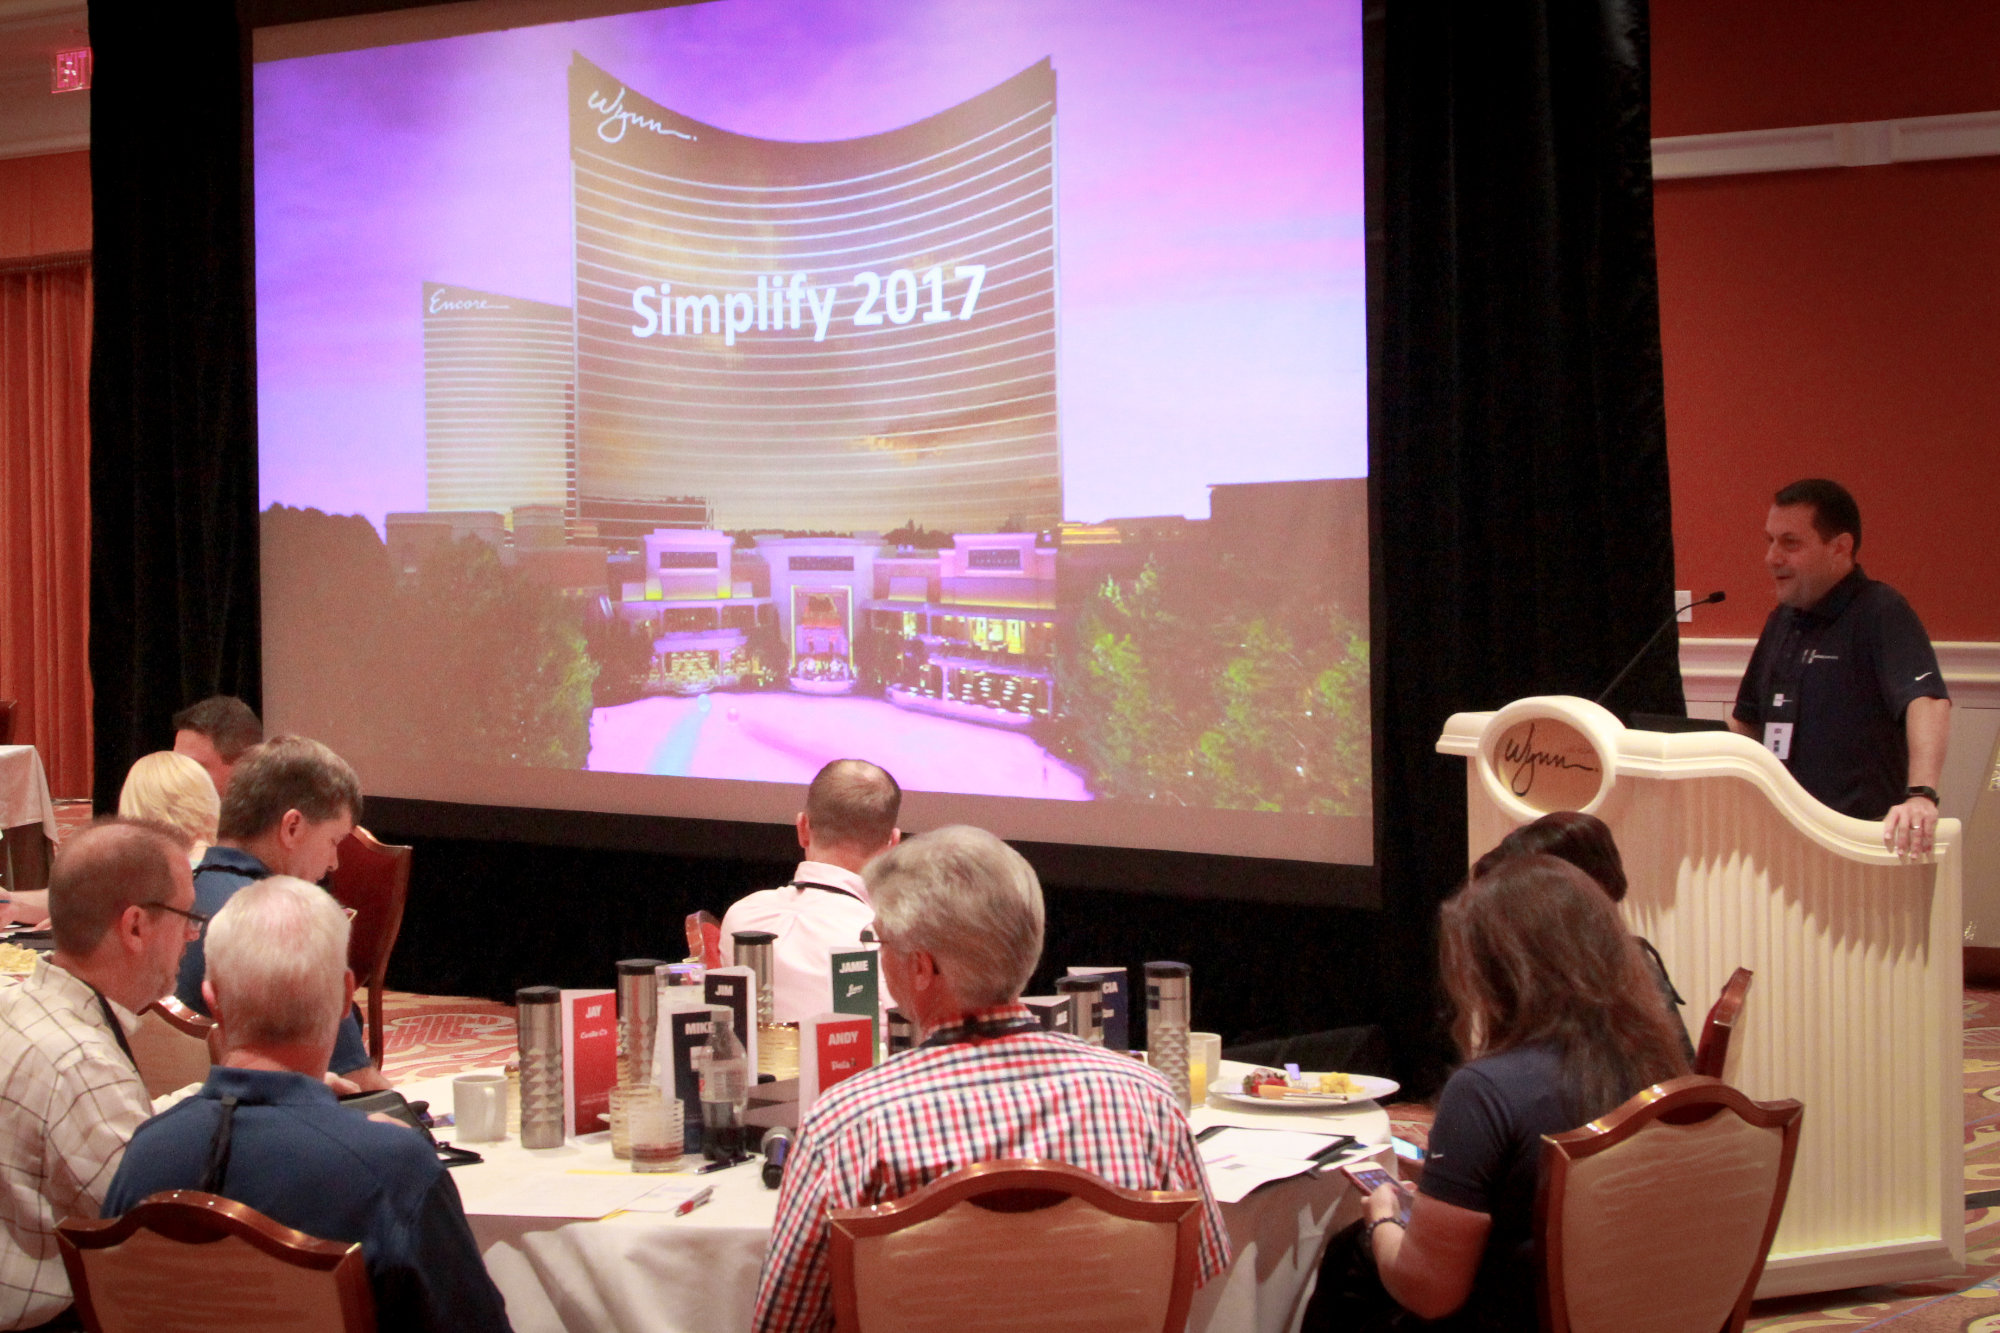 Simplify 2017 was informative and inspirational